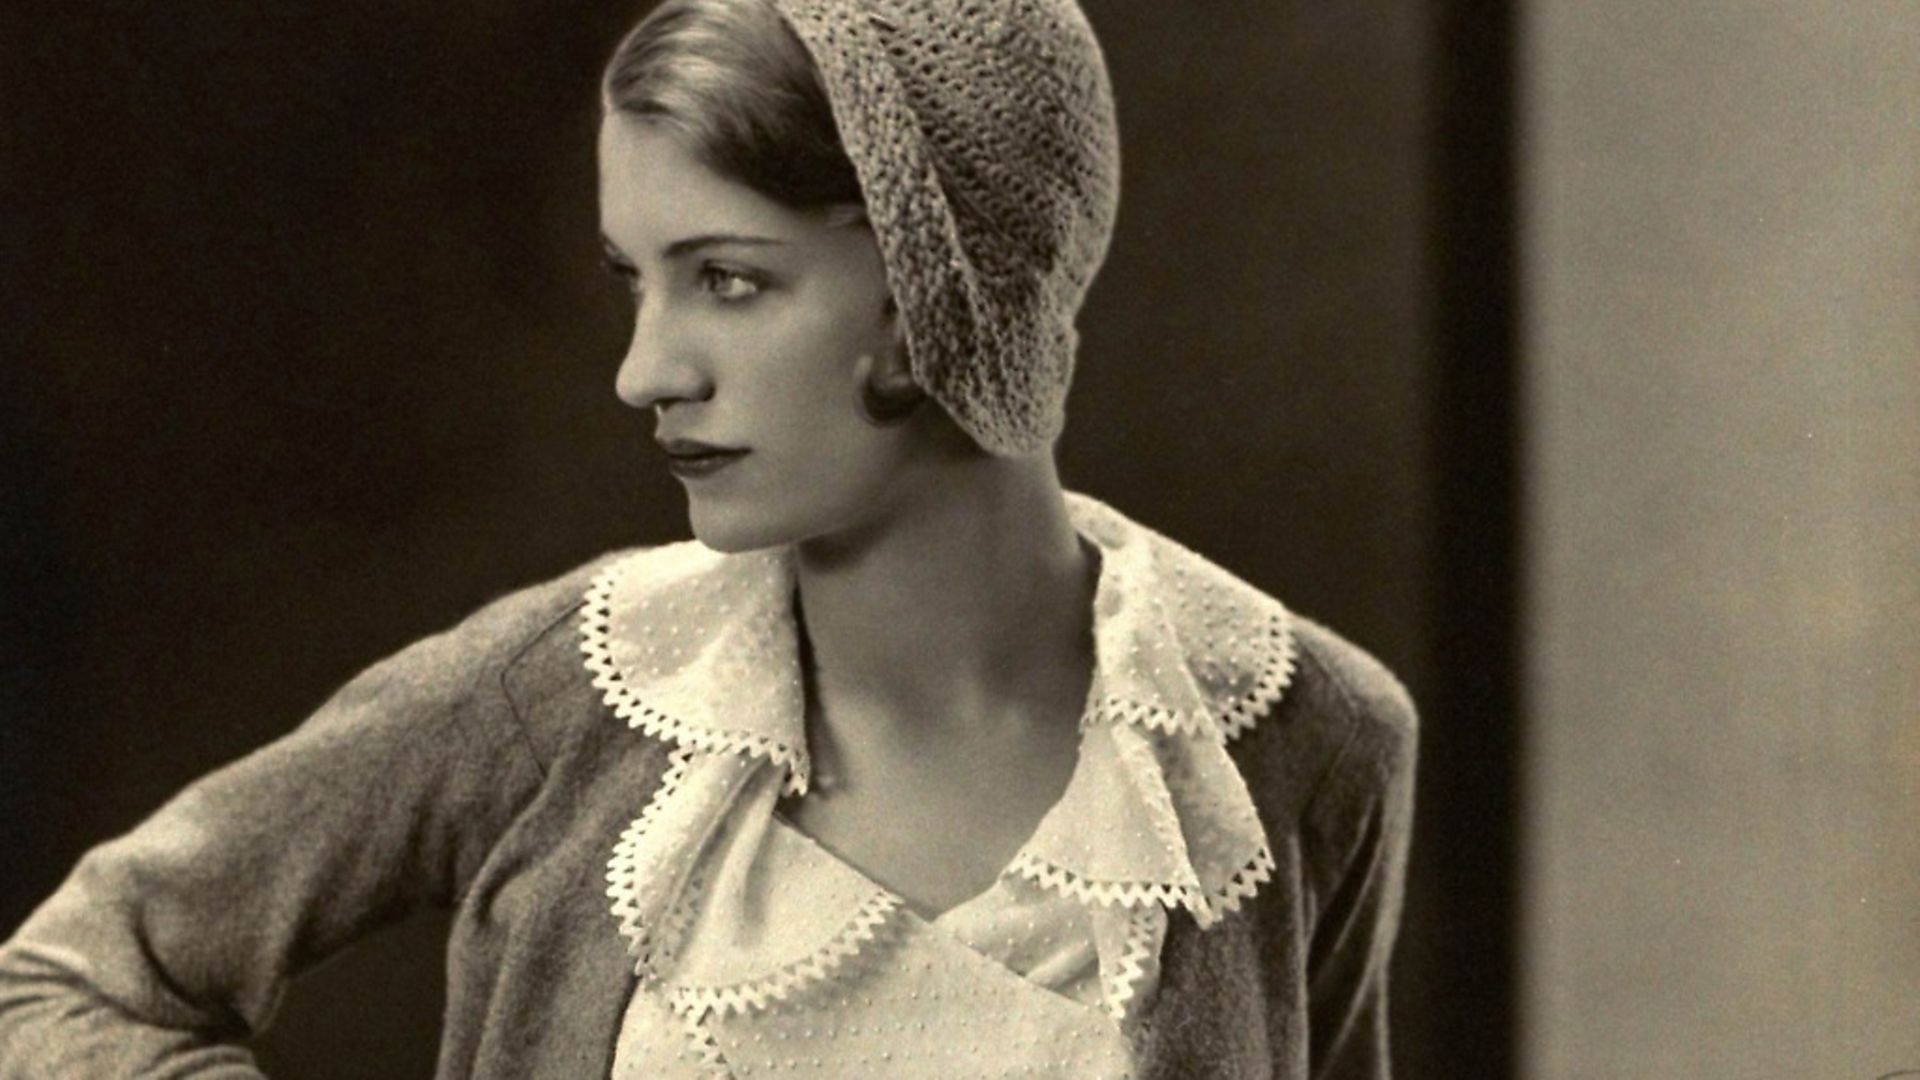 Lee Miller models a  Mirande suit with gloves and crocheted hat. (Photo by�George Hoyningen-Huene/Cond� Nast via Getty Images) - Credit: Cond� Nast via Getty Images